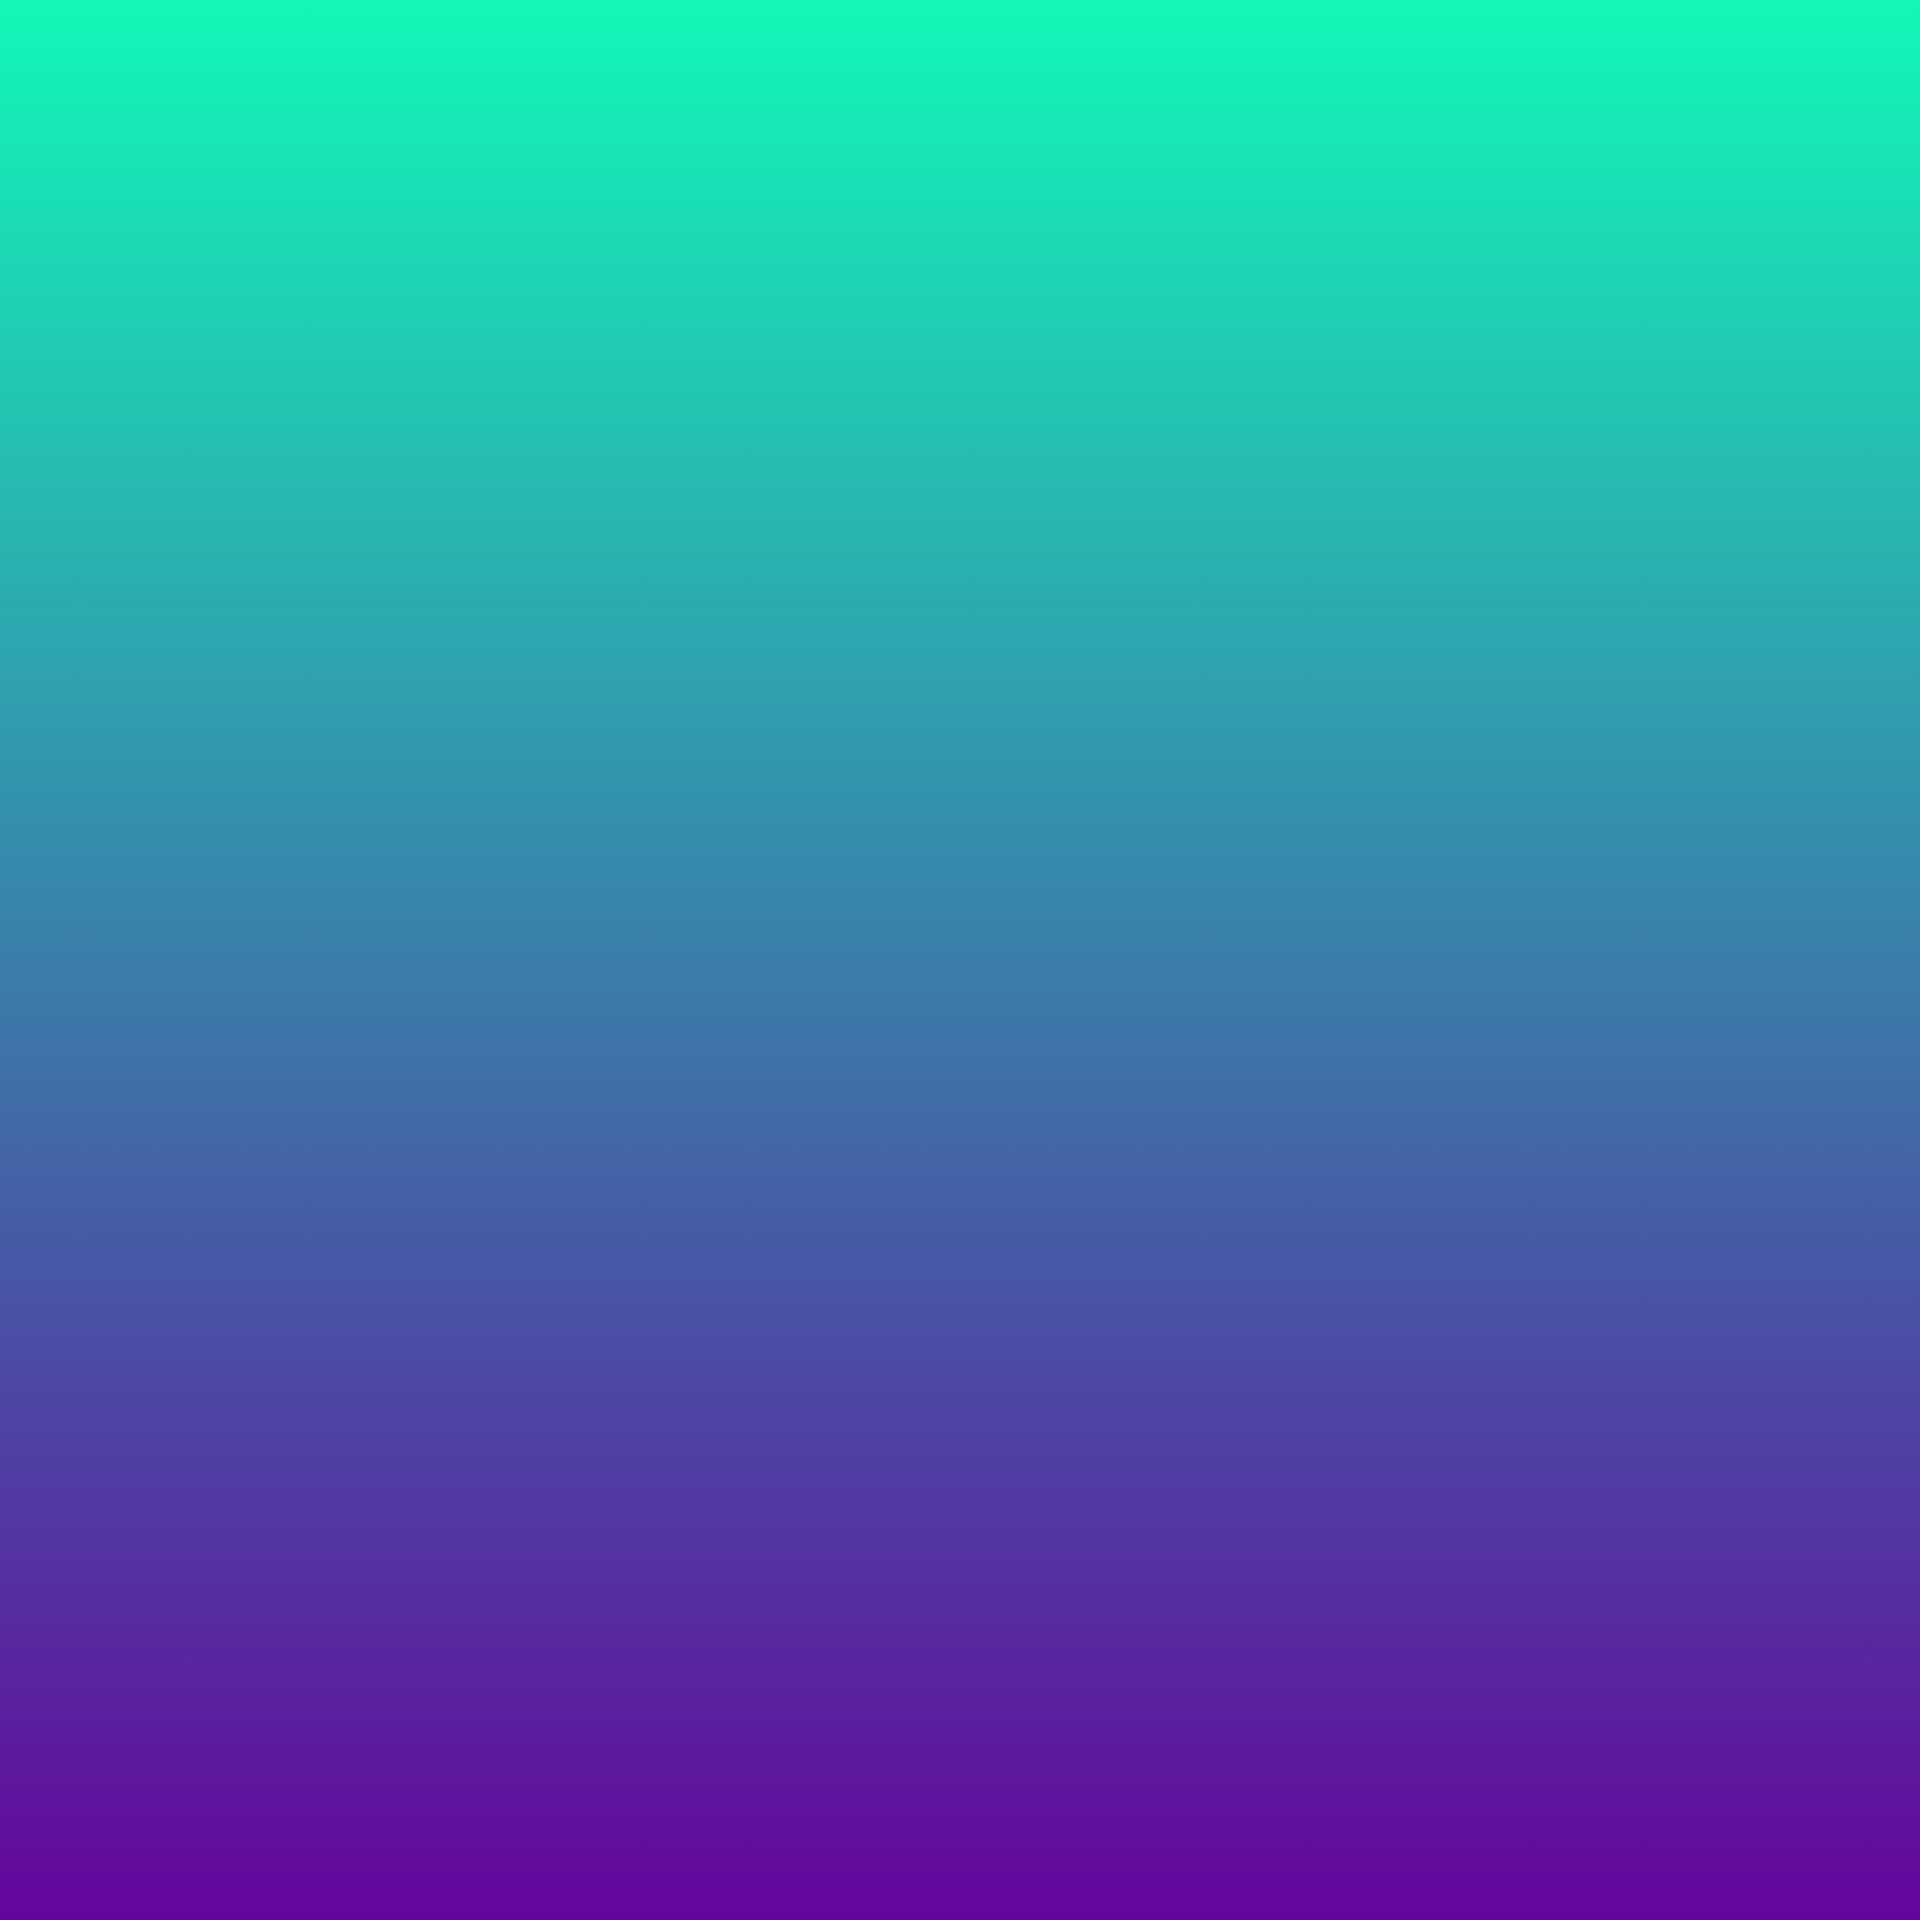 Tint Violet Blue Green Gradient Free Image From Needpix Com